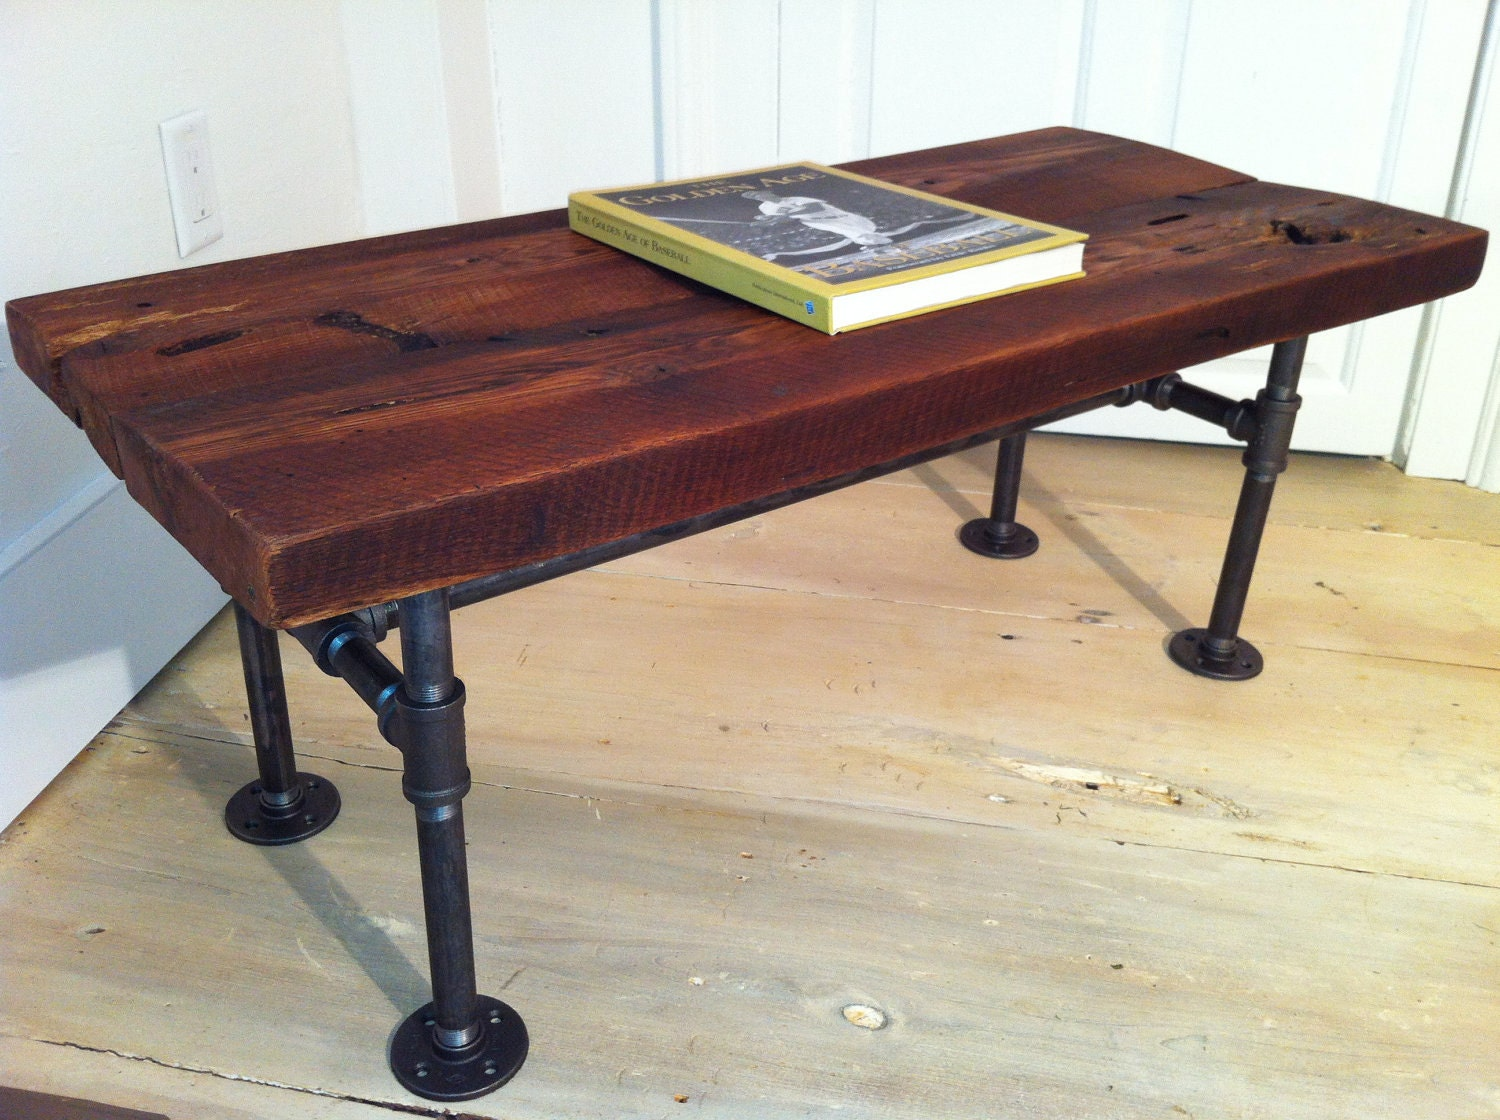 Reclaimed Barnwood Coffee Table Modern Industrial By Scottcassin